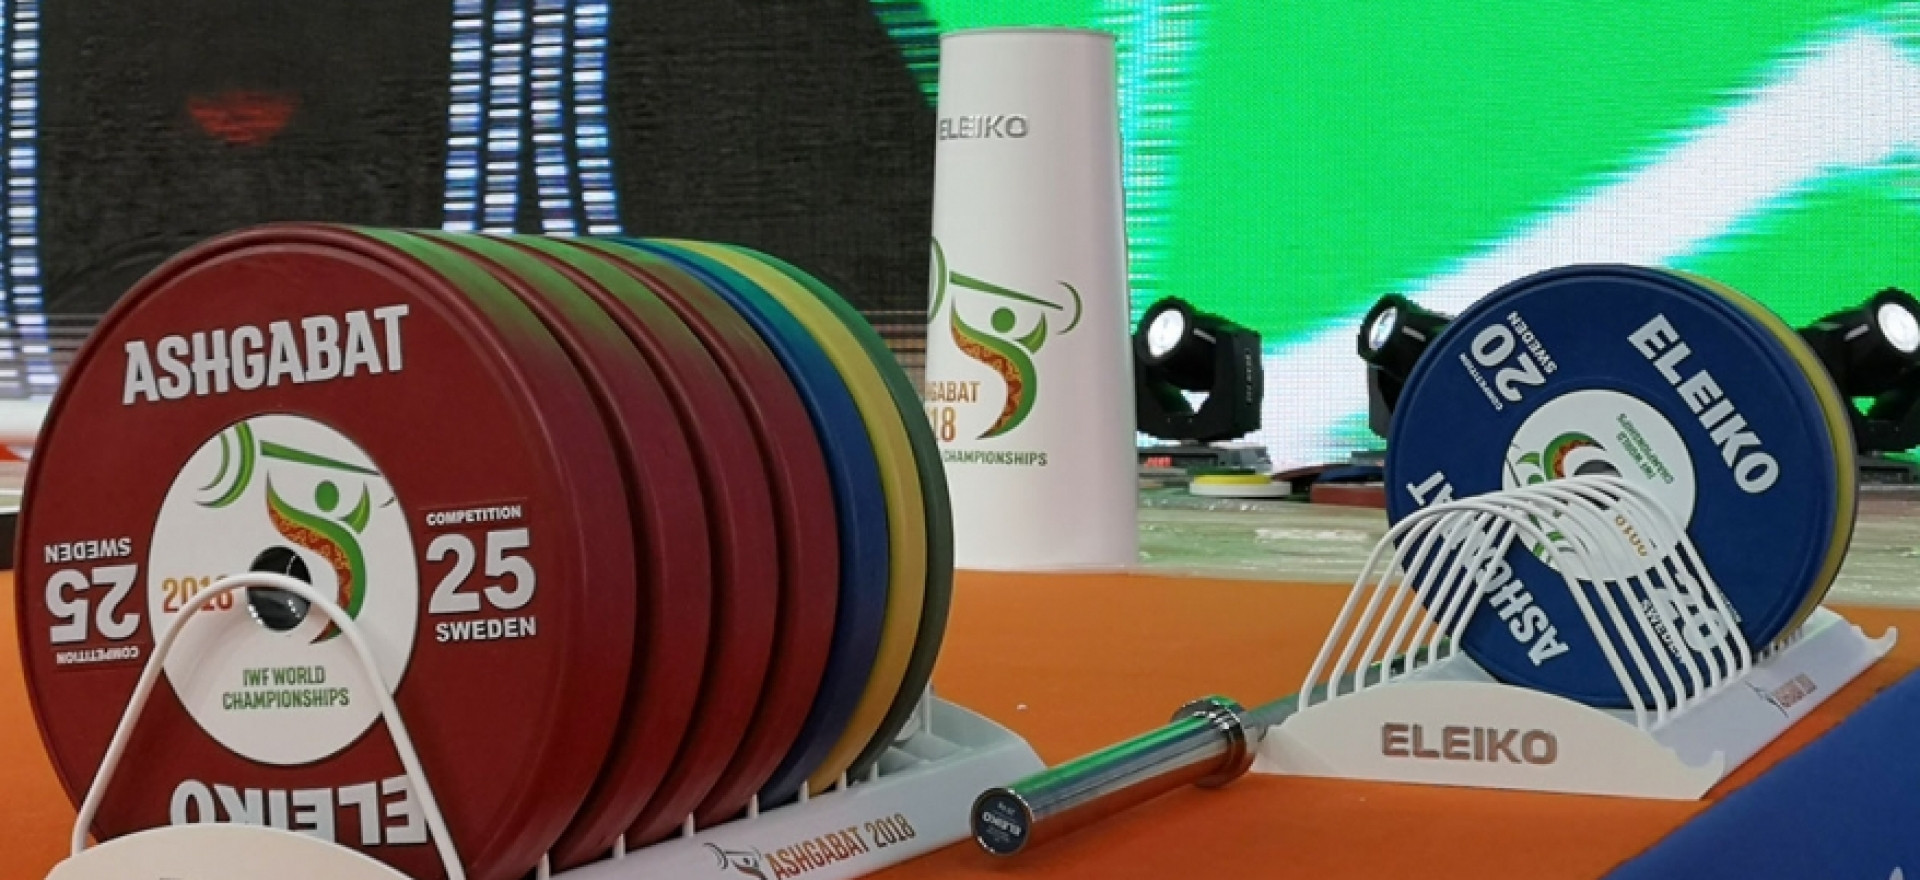 Lima agreed to hand over this year's IWF World Championships to Ashgabat